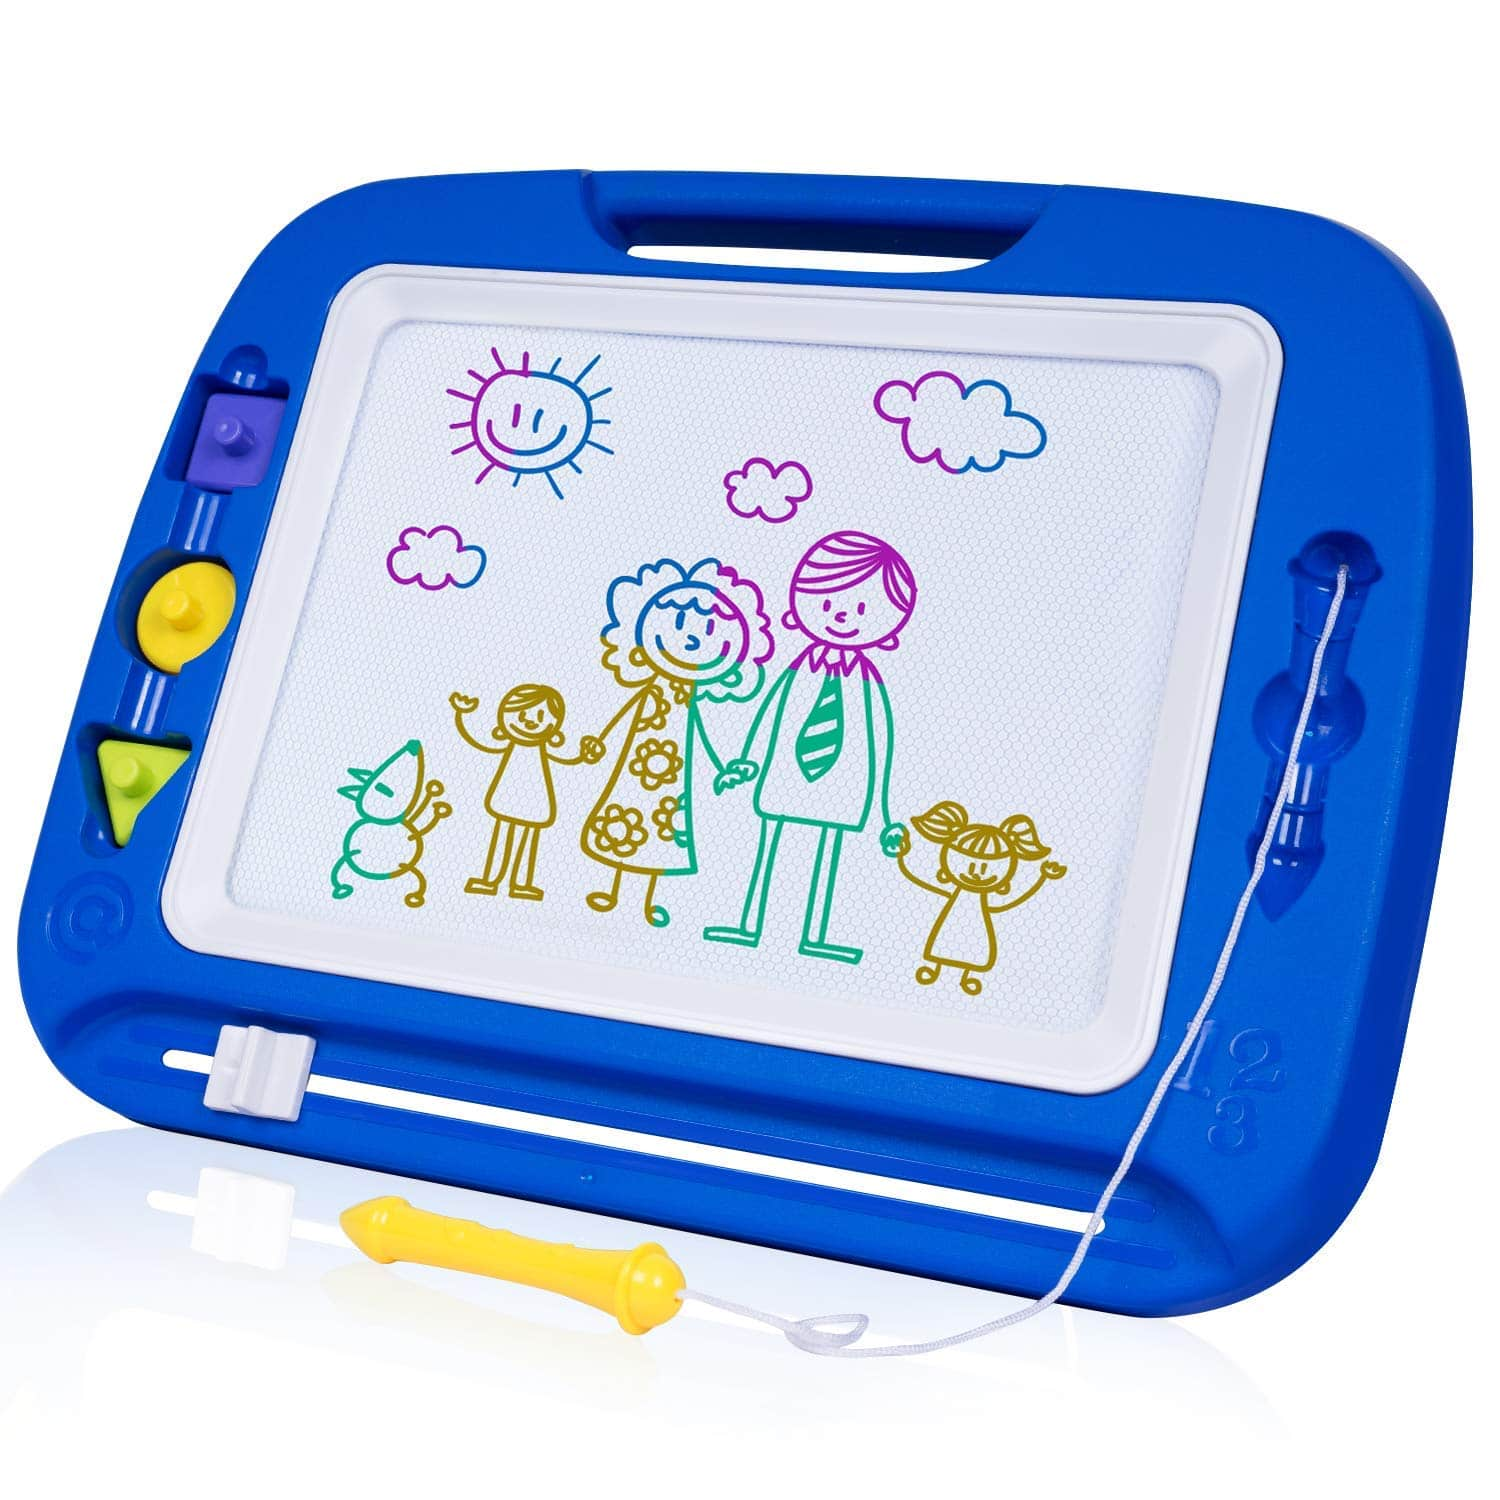 12.8X16.3 Magnetic Drawing Board Toy for Kids, Large Doodle Board Writing Painting Sketch Pad-$12.93 with free shipping with Prime